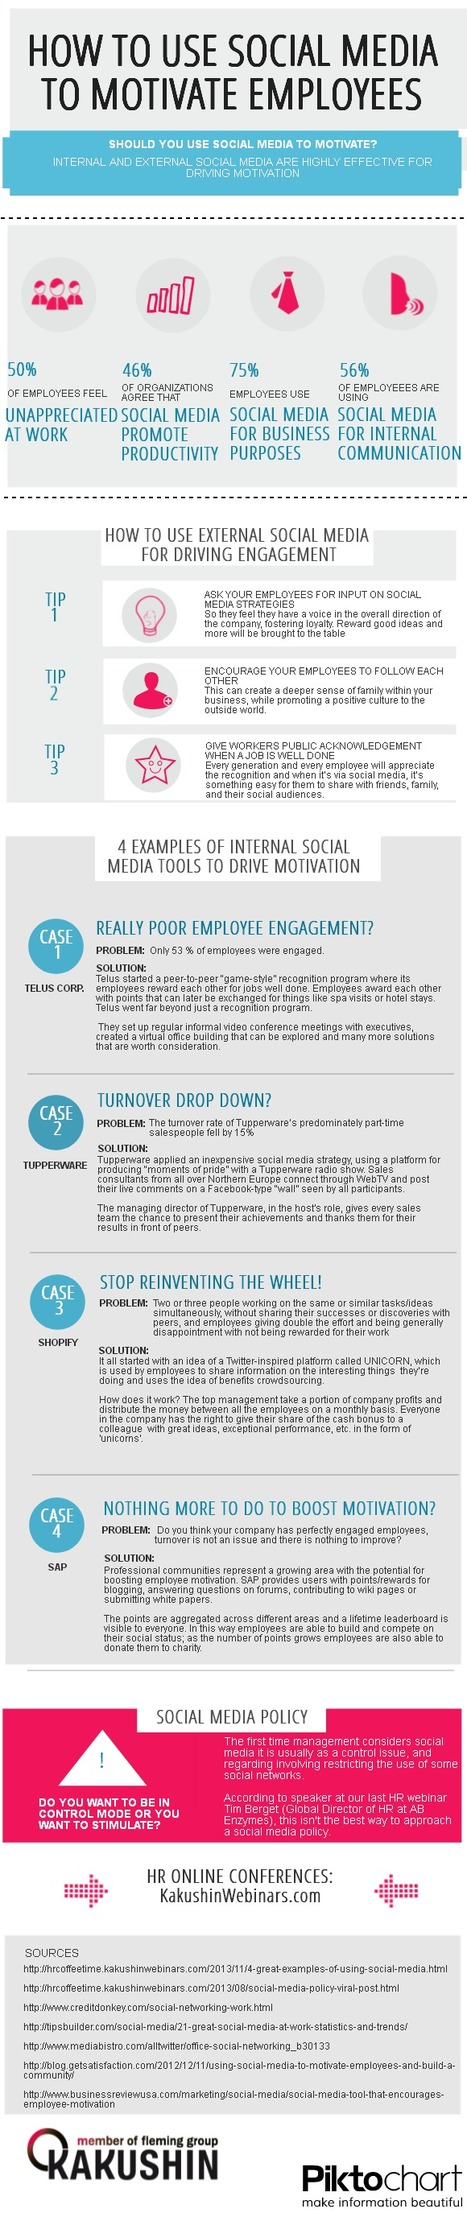 How To Use Social Media To Motivate Employees Infographic HR Webinar Series 2013 | Kakushin | Online Marketing - News & How to's | Scoop.it